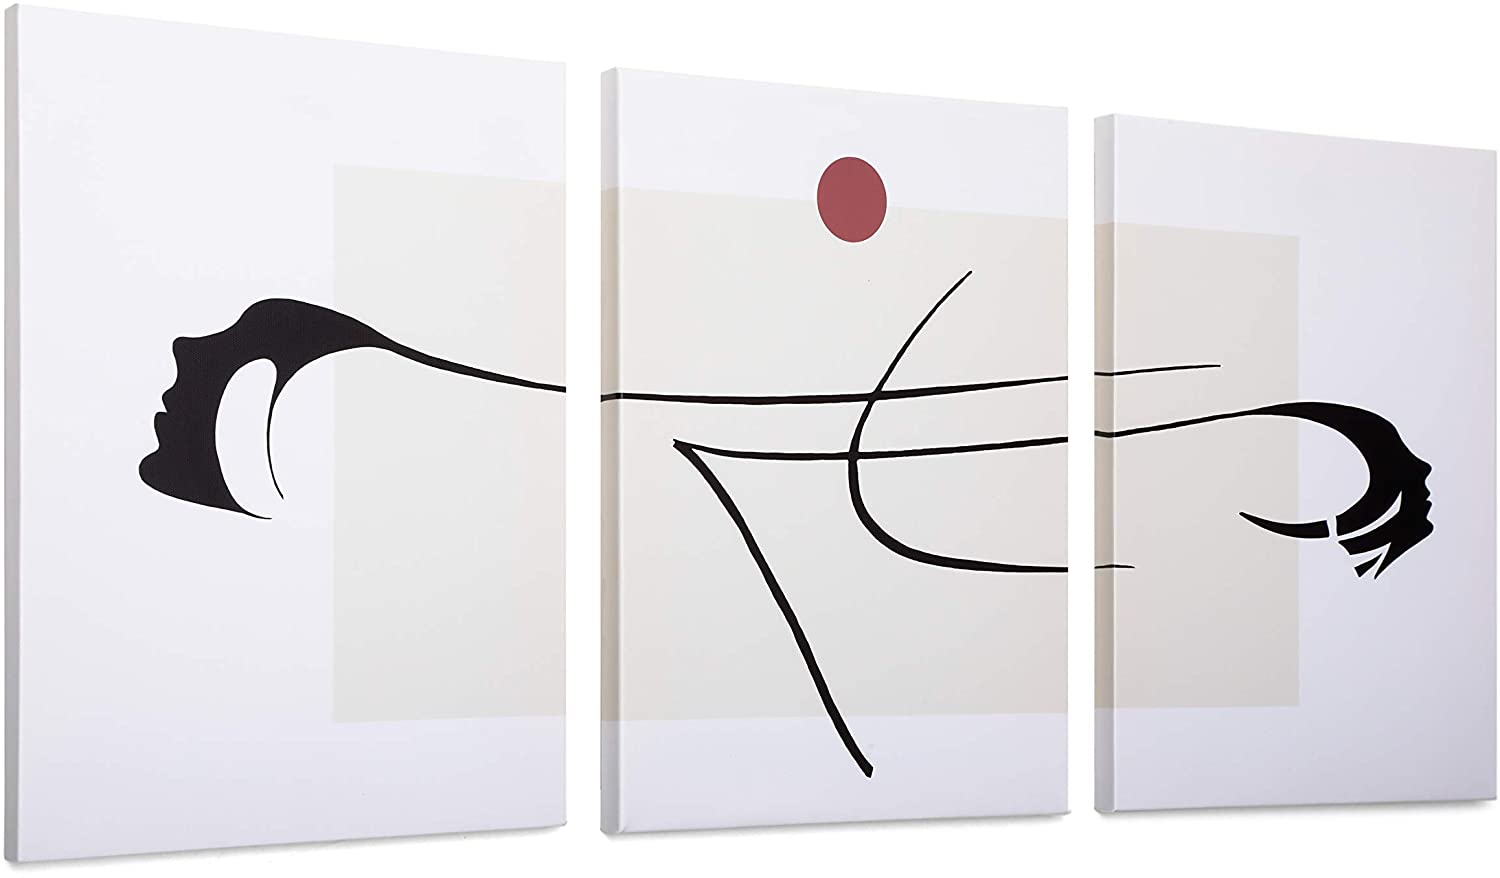 Minimalist Decor for Living Room-3 Panel Japanese Room Decor-Minimal Wall Decor-Wall Canvas Art Work for Dorm-Wall Art Set of 3-12x16 Inch/Piece-Rustic Bedroom Decor for Couples (Sunlight and Face)